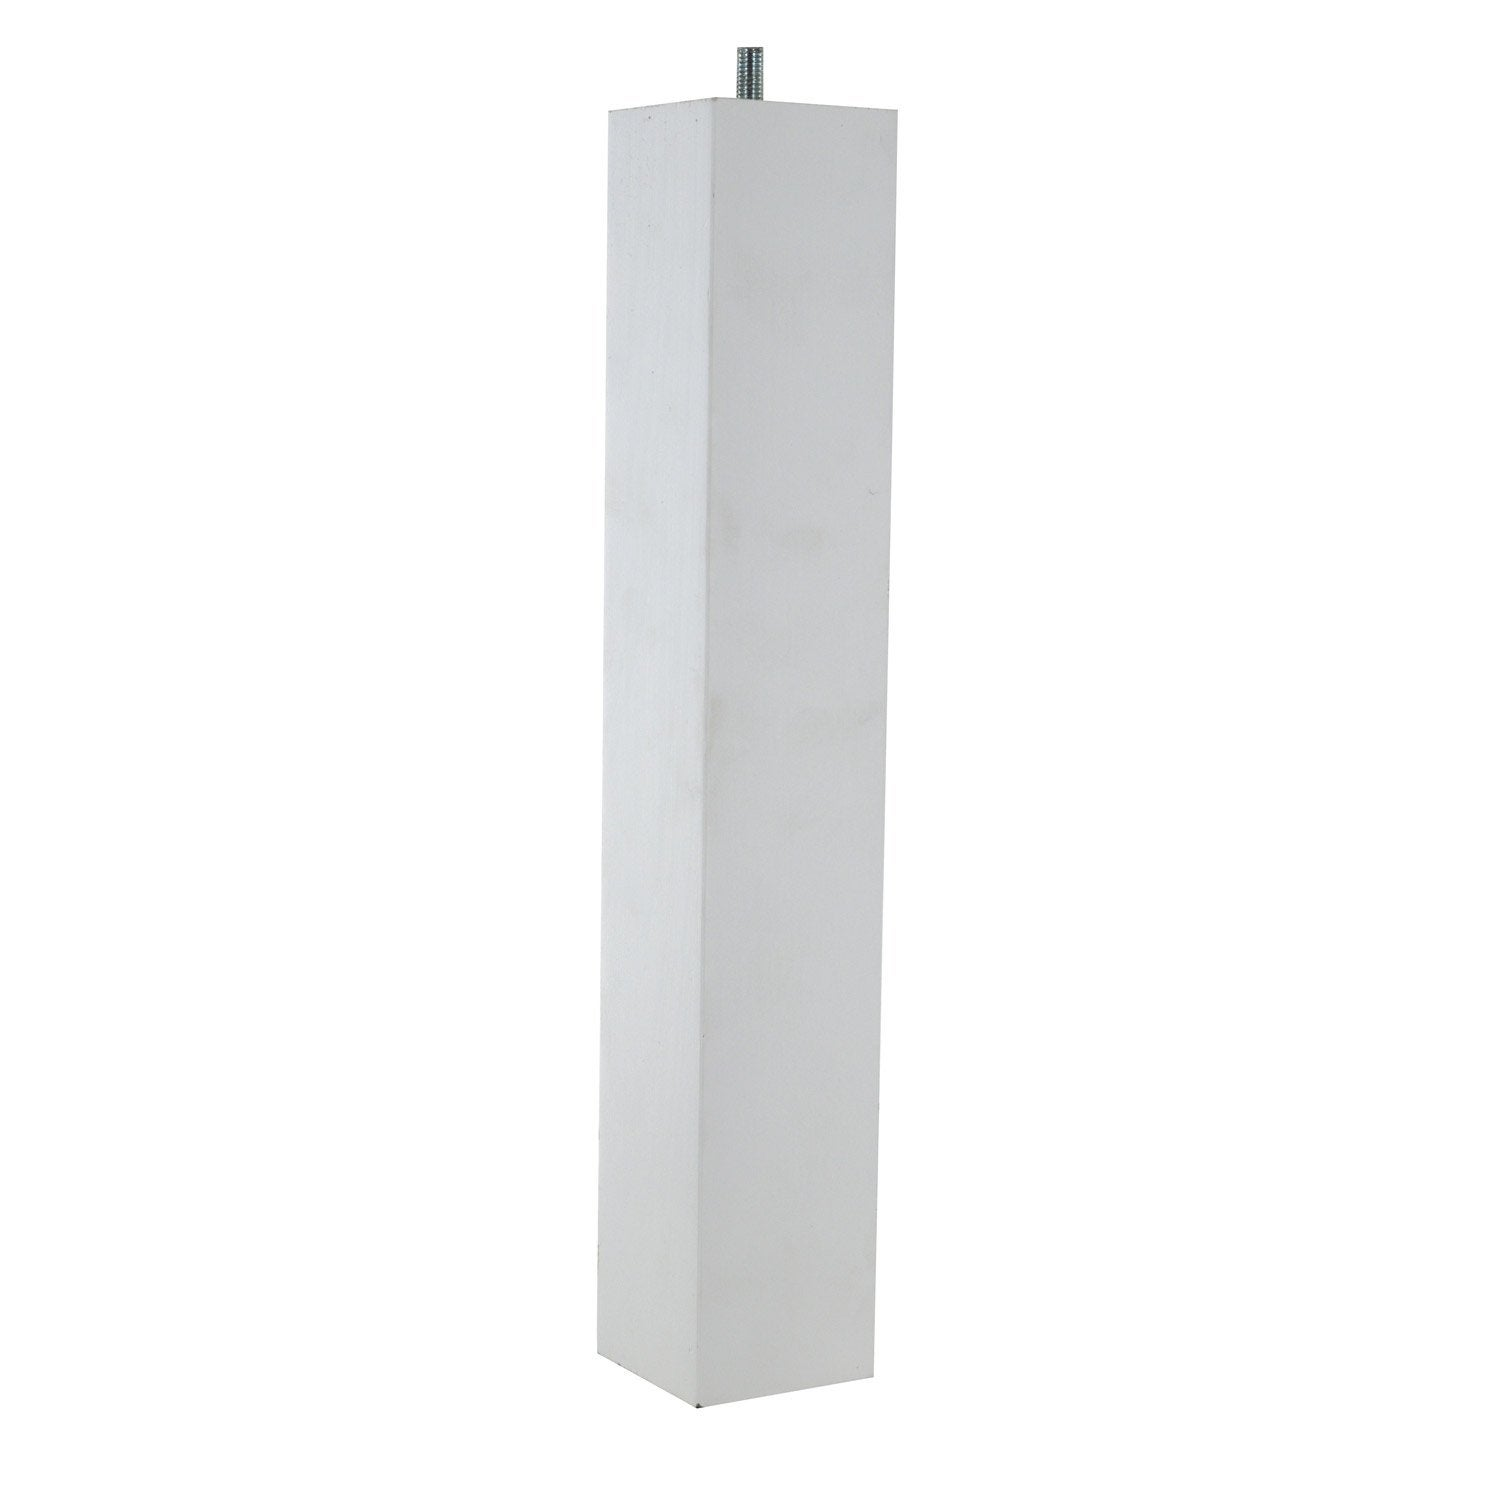 Pied de table basse carr fixe h tre laqu blanc 36 cm for Pied table basse bois